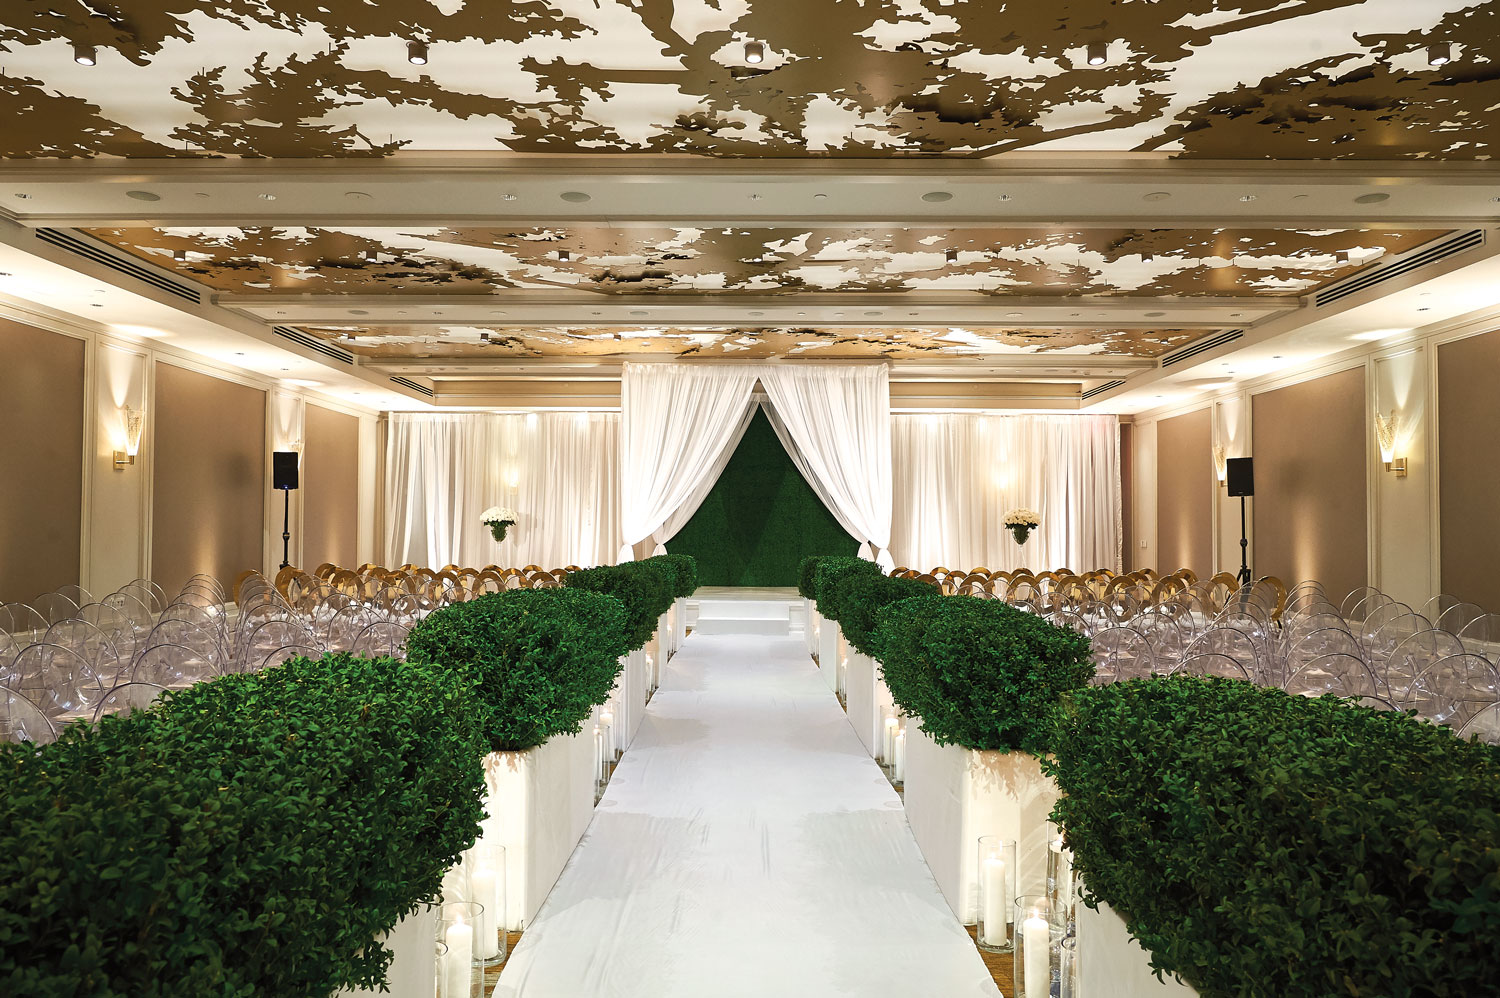 Inside Weddings Summer 2018 issue preview ballroom wedding reception white green